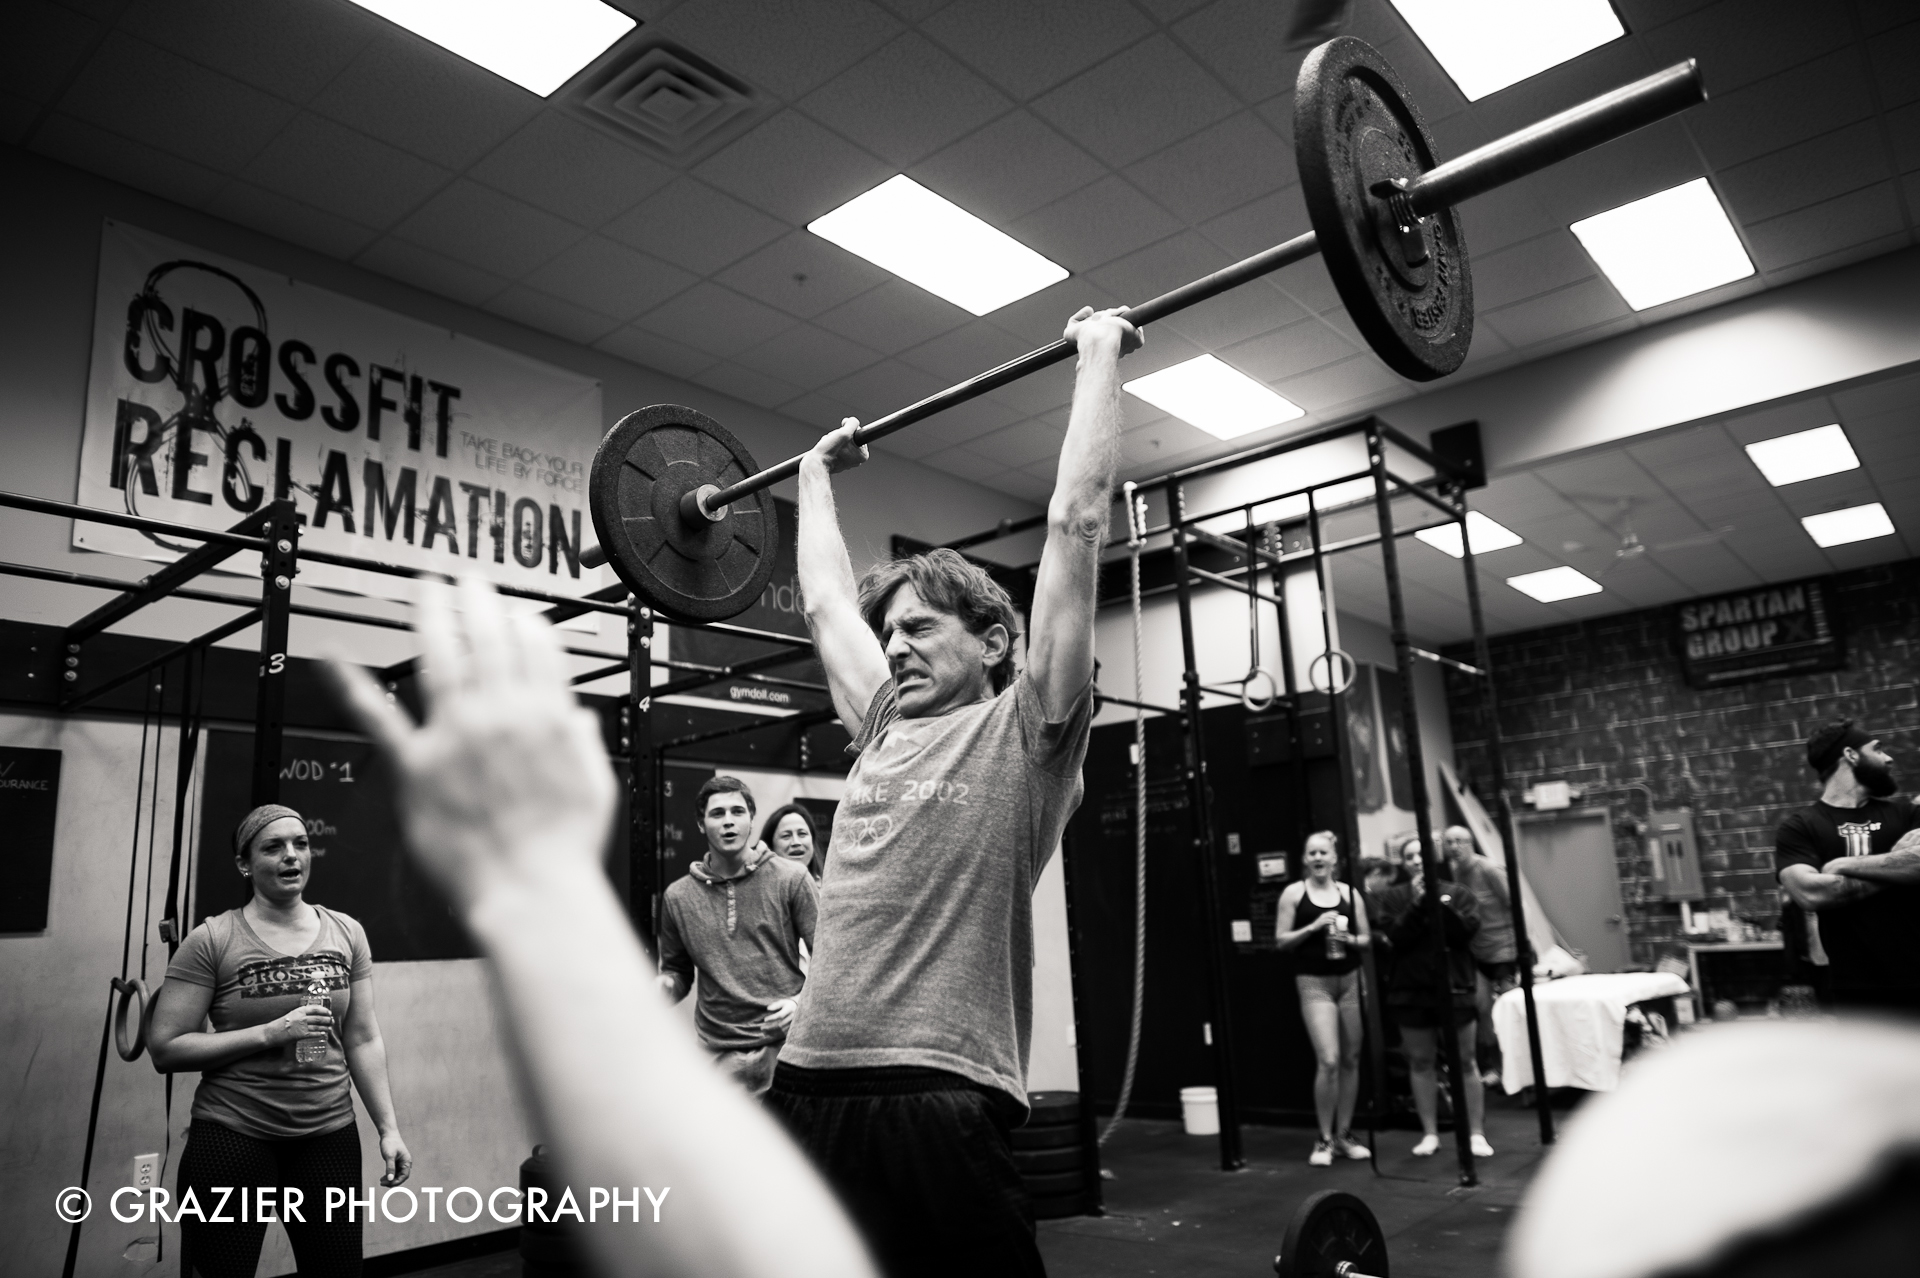 Grazier_Photography_Crossfit_150328-61.JPG